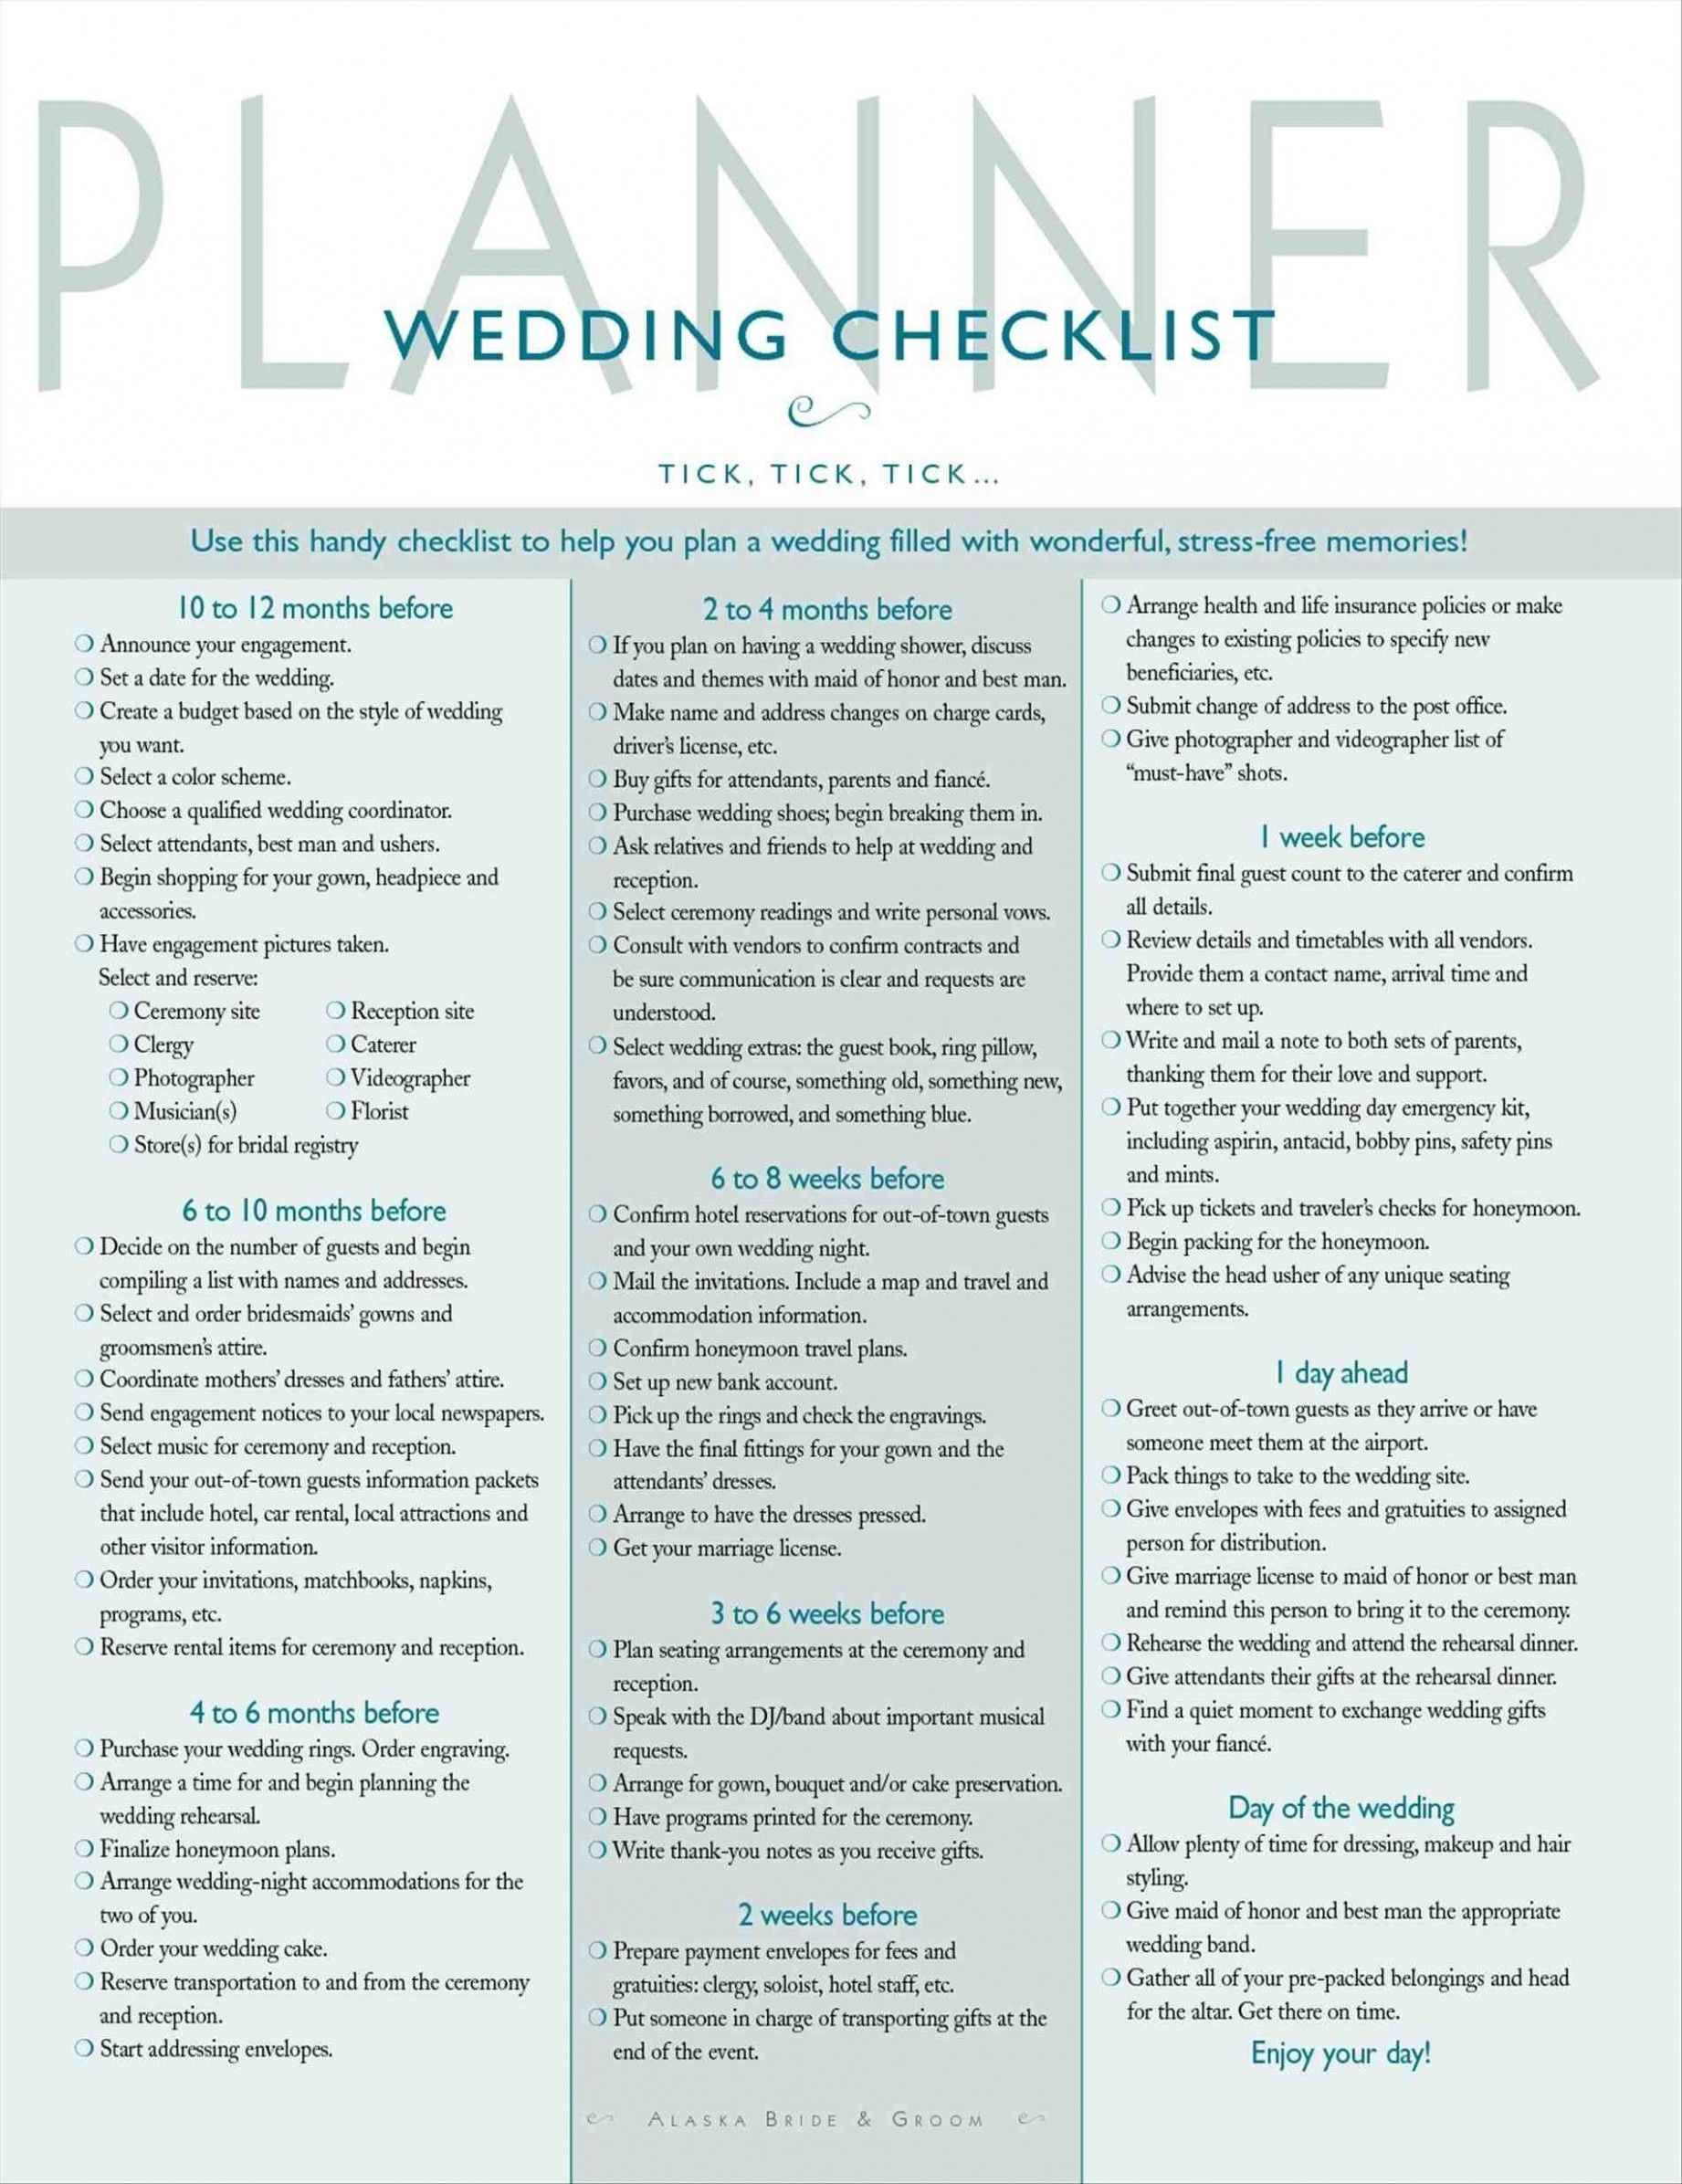 Wedding Checklist The Knot Brides Wedding Planner Checklist Wedding Coordinator Checklist Diy Wedding Checklist